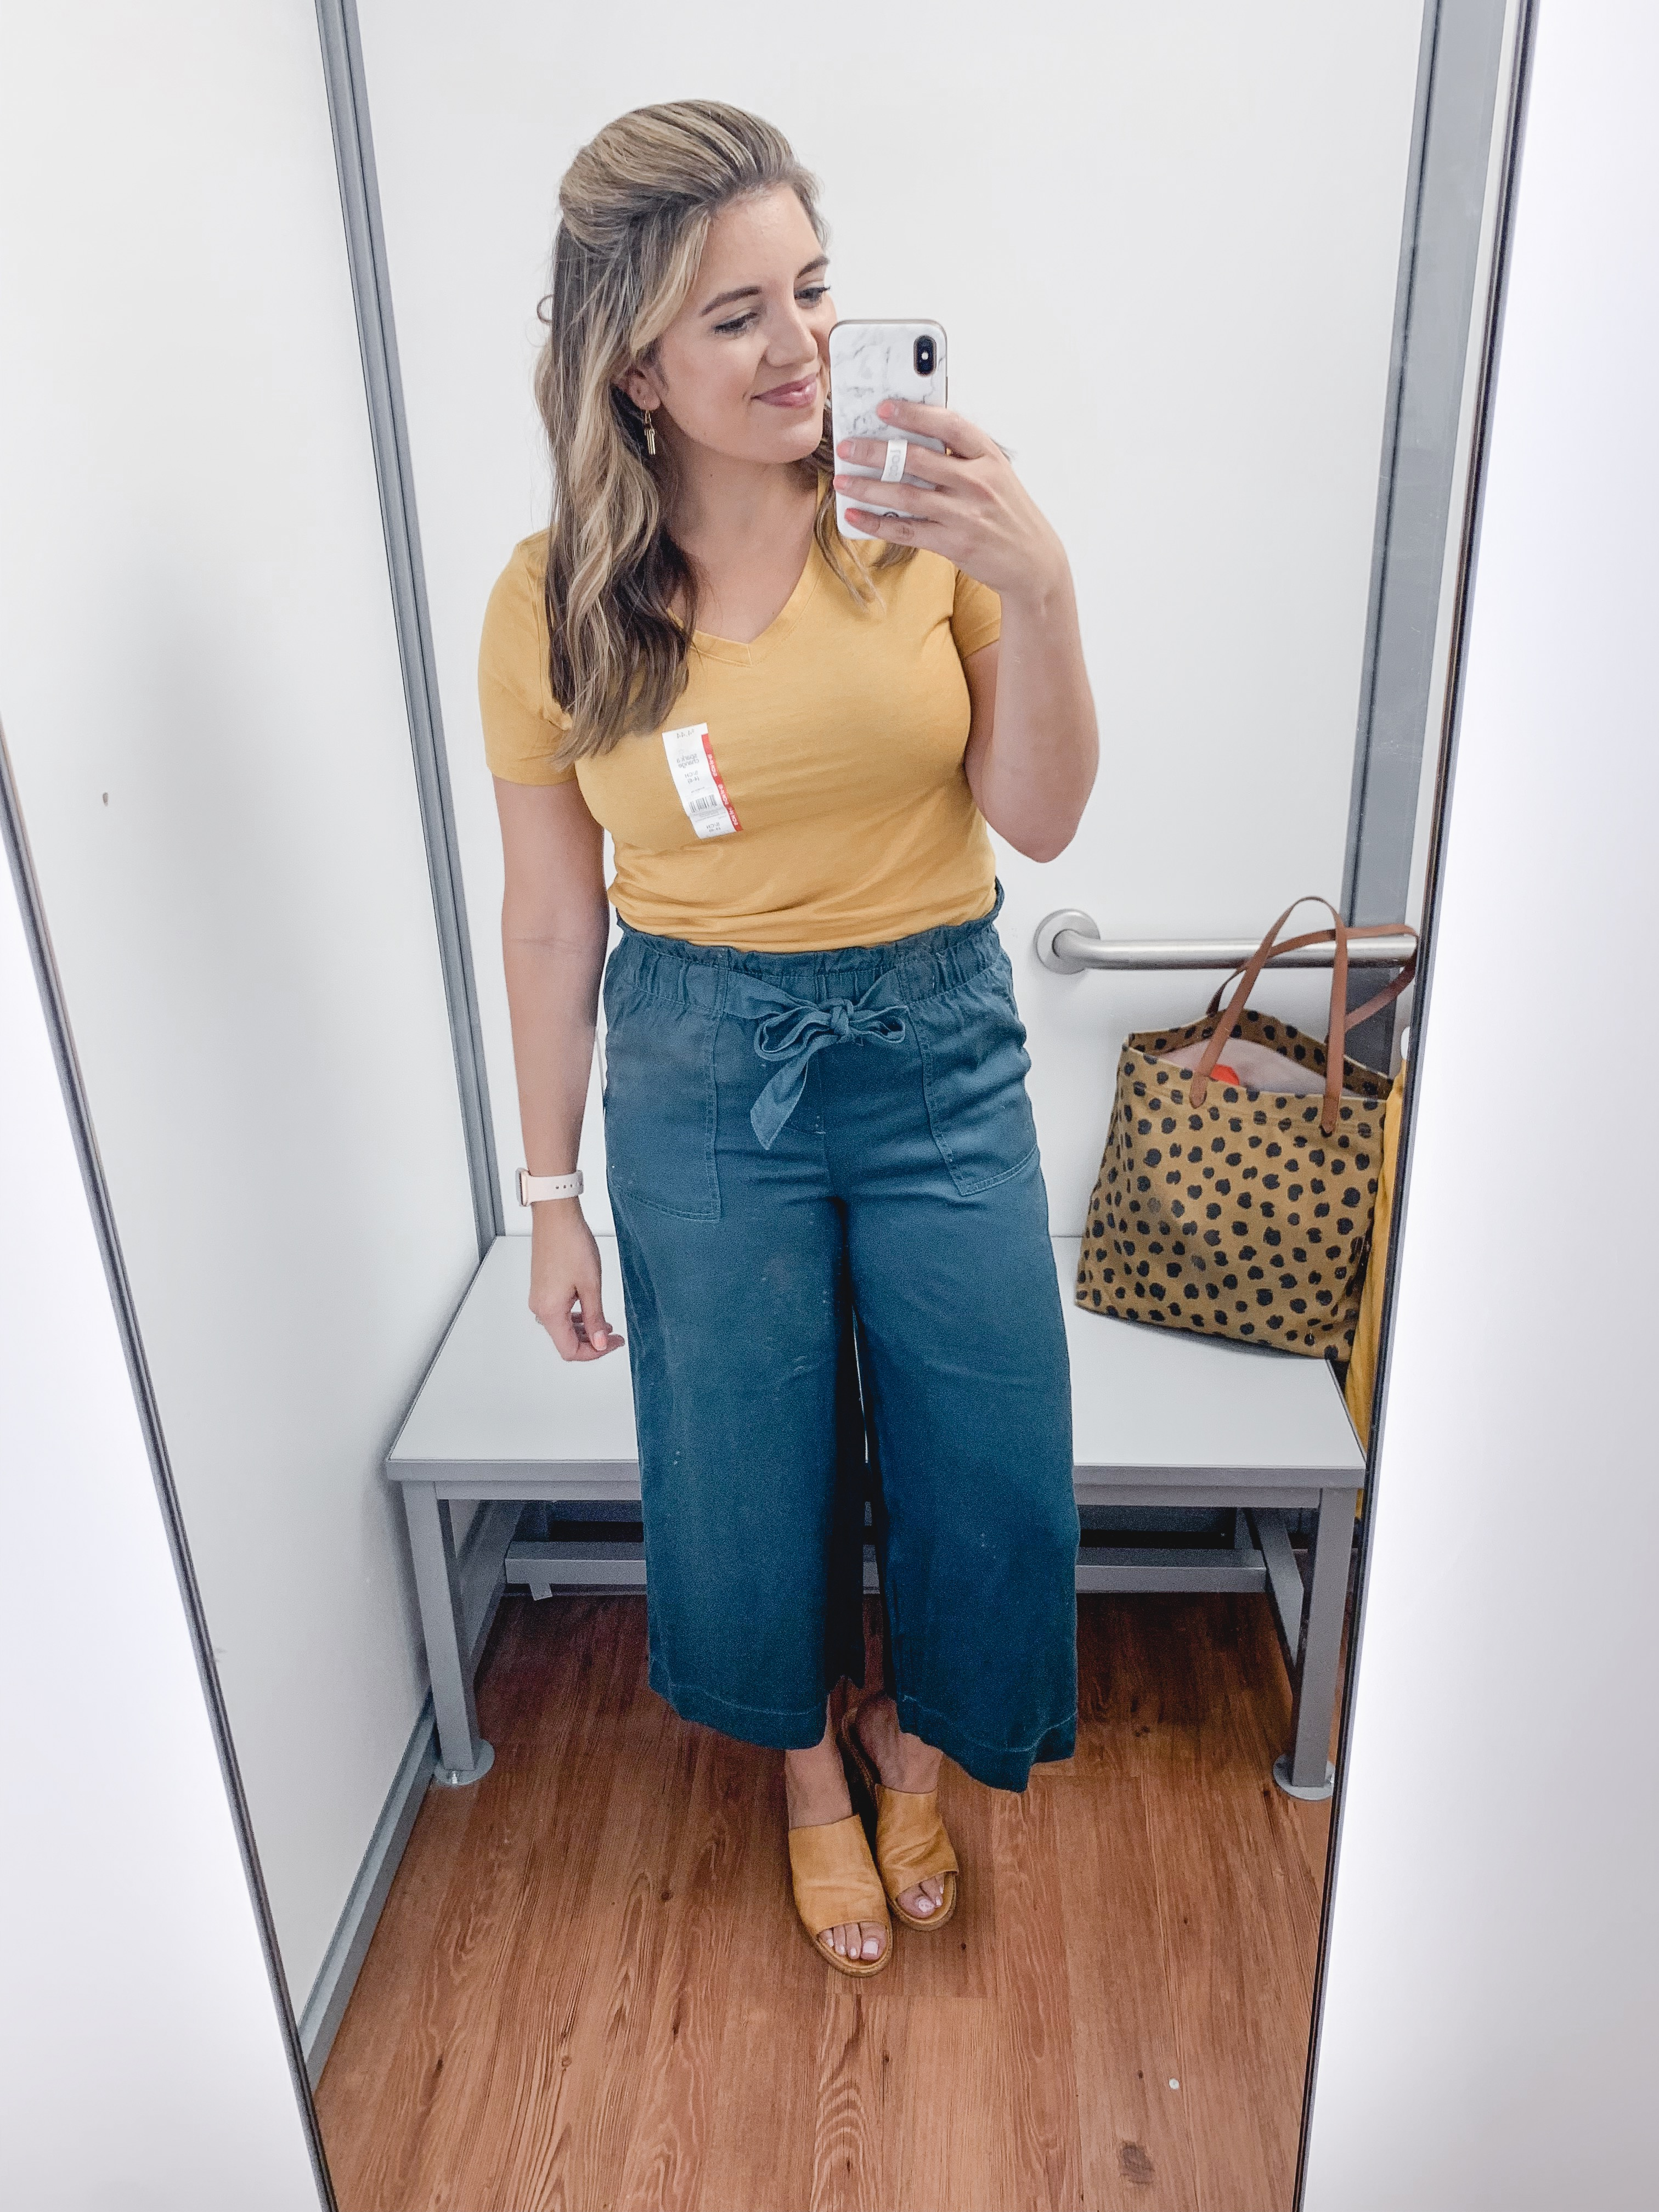 Affordable style blogger, Lauren Dix, shares over ten of the best Walmart women's clothing finds for fall 2019.